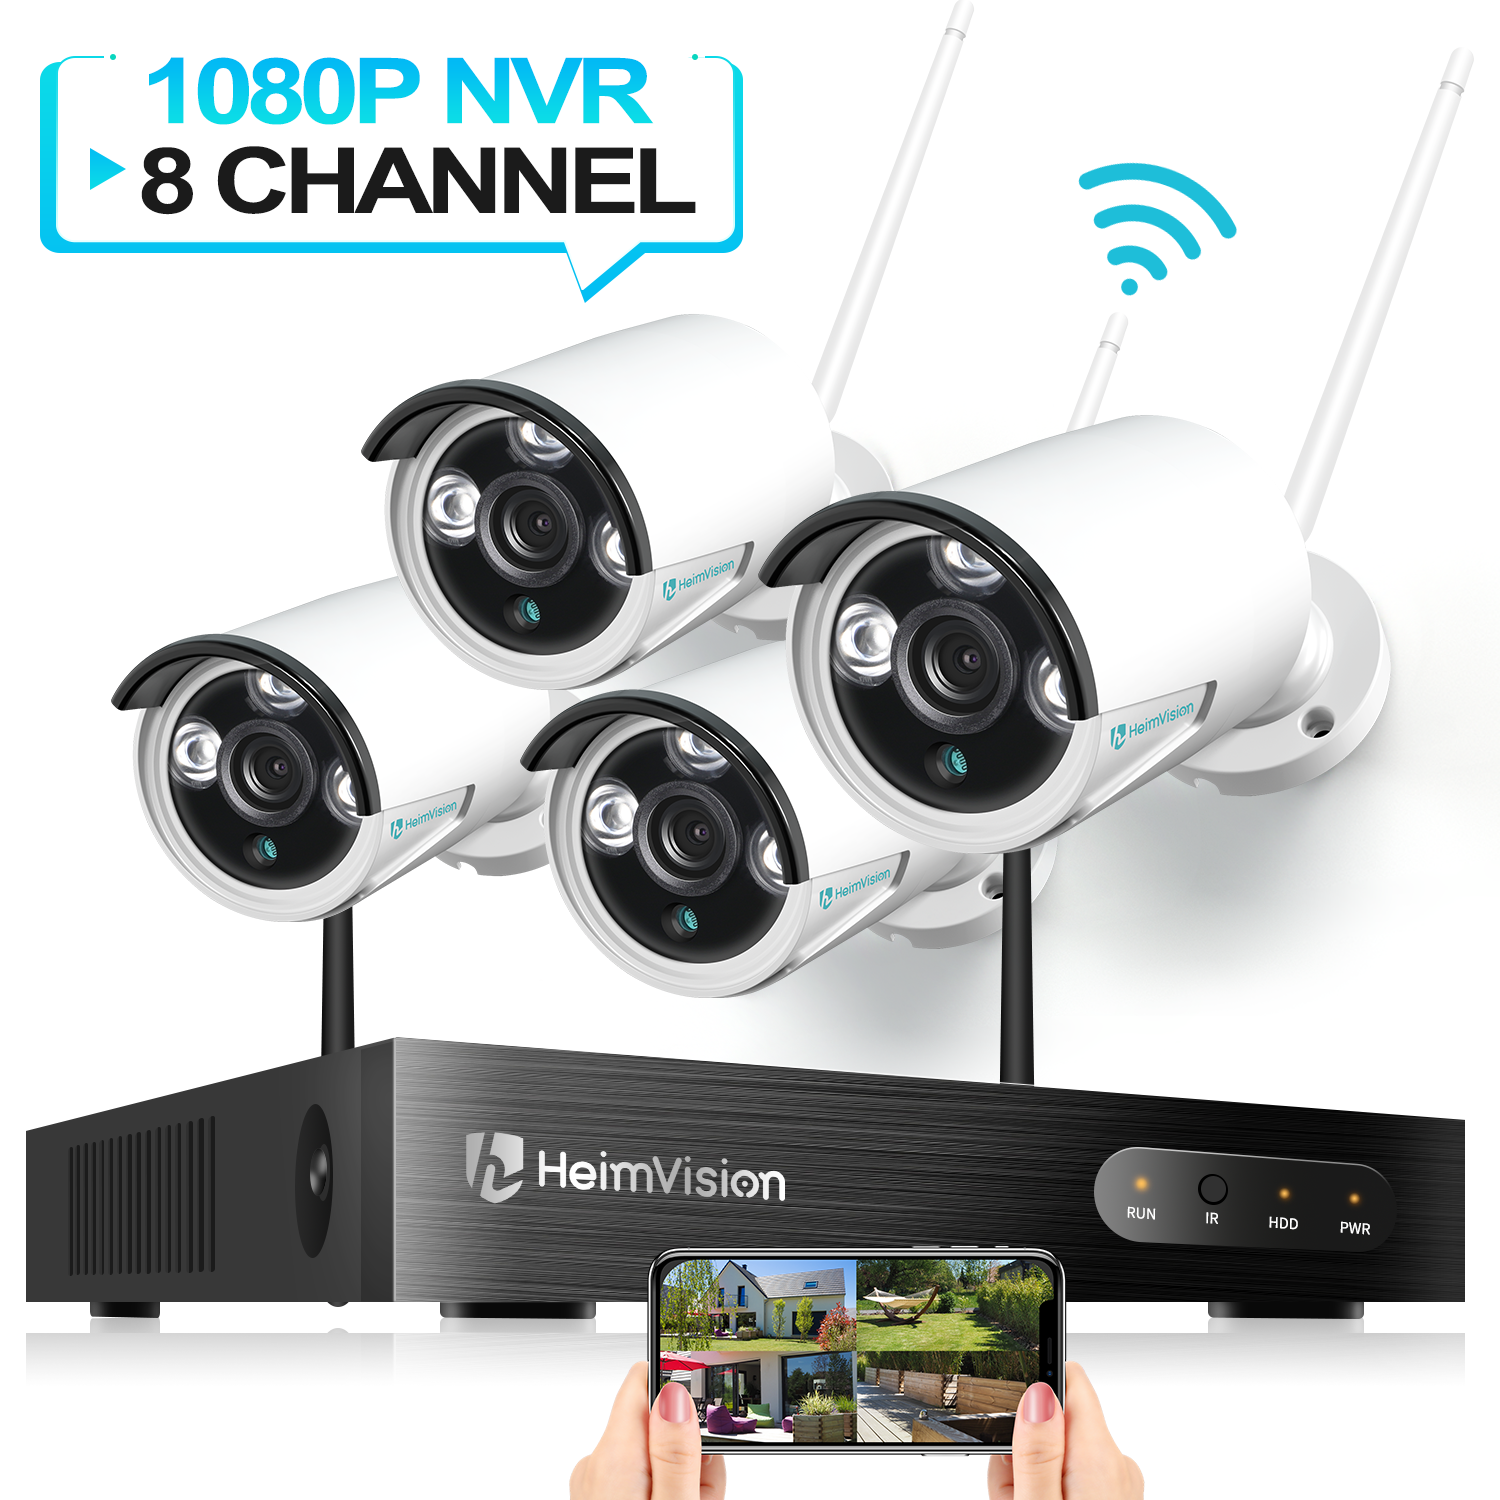 Heimvision HM241 Outdoor Camera Full HD Wifi Motion Detection Security System